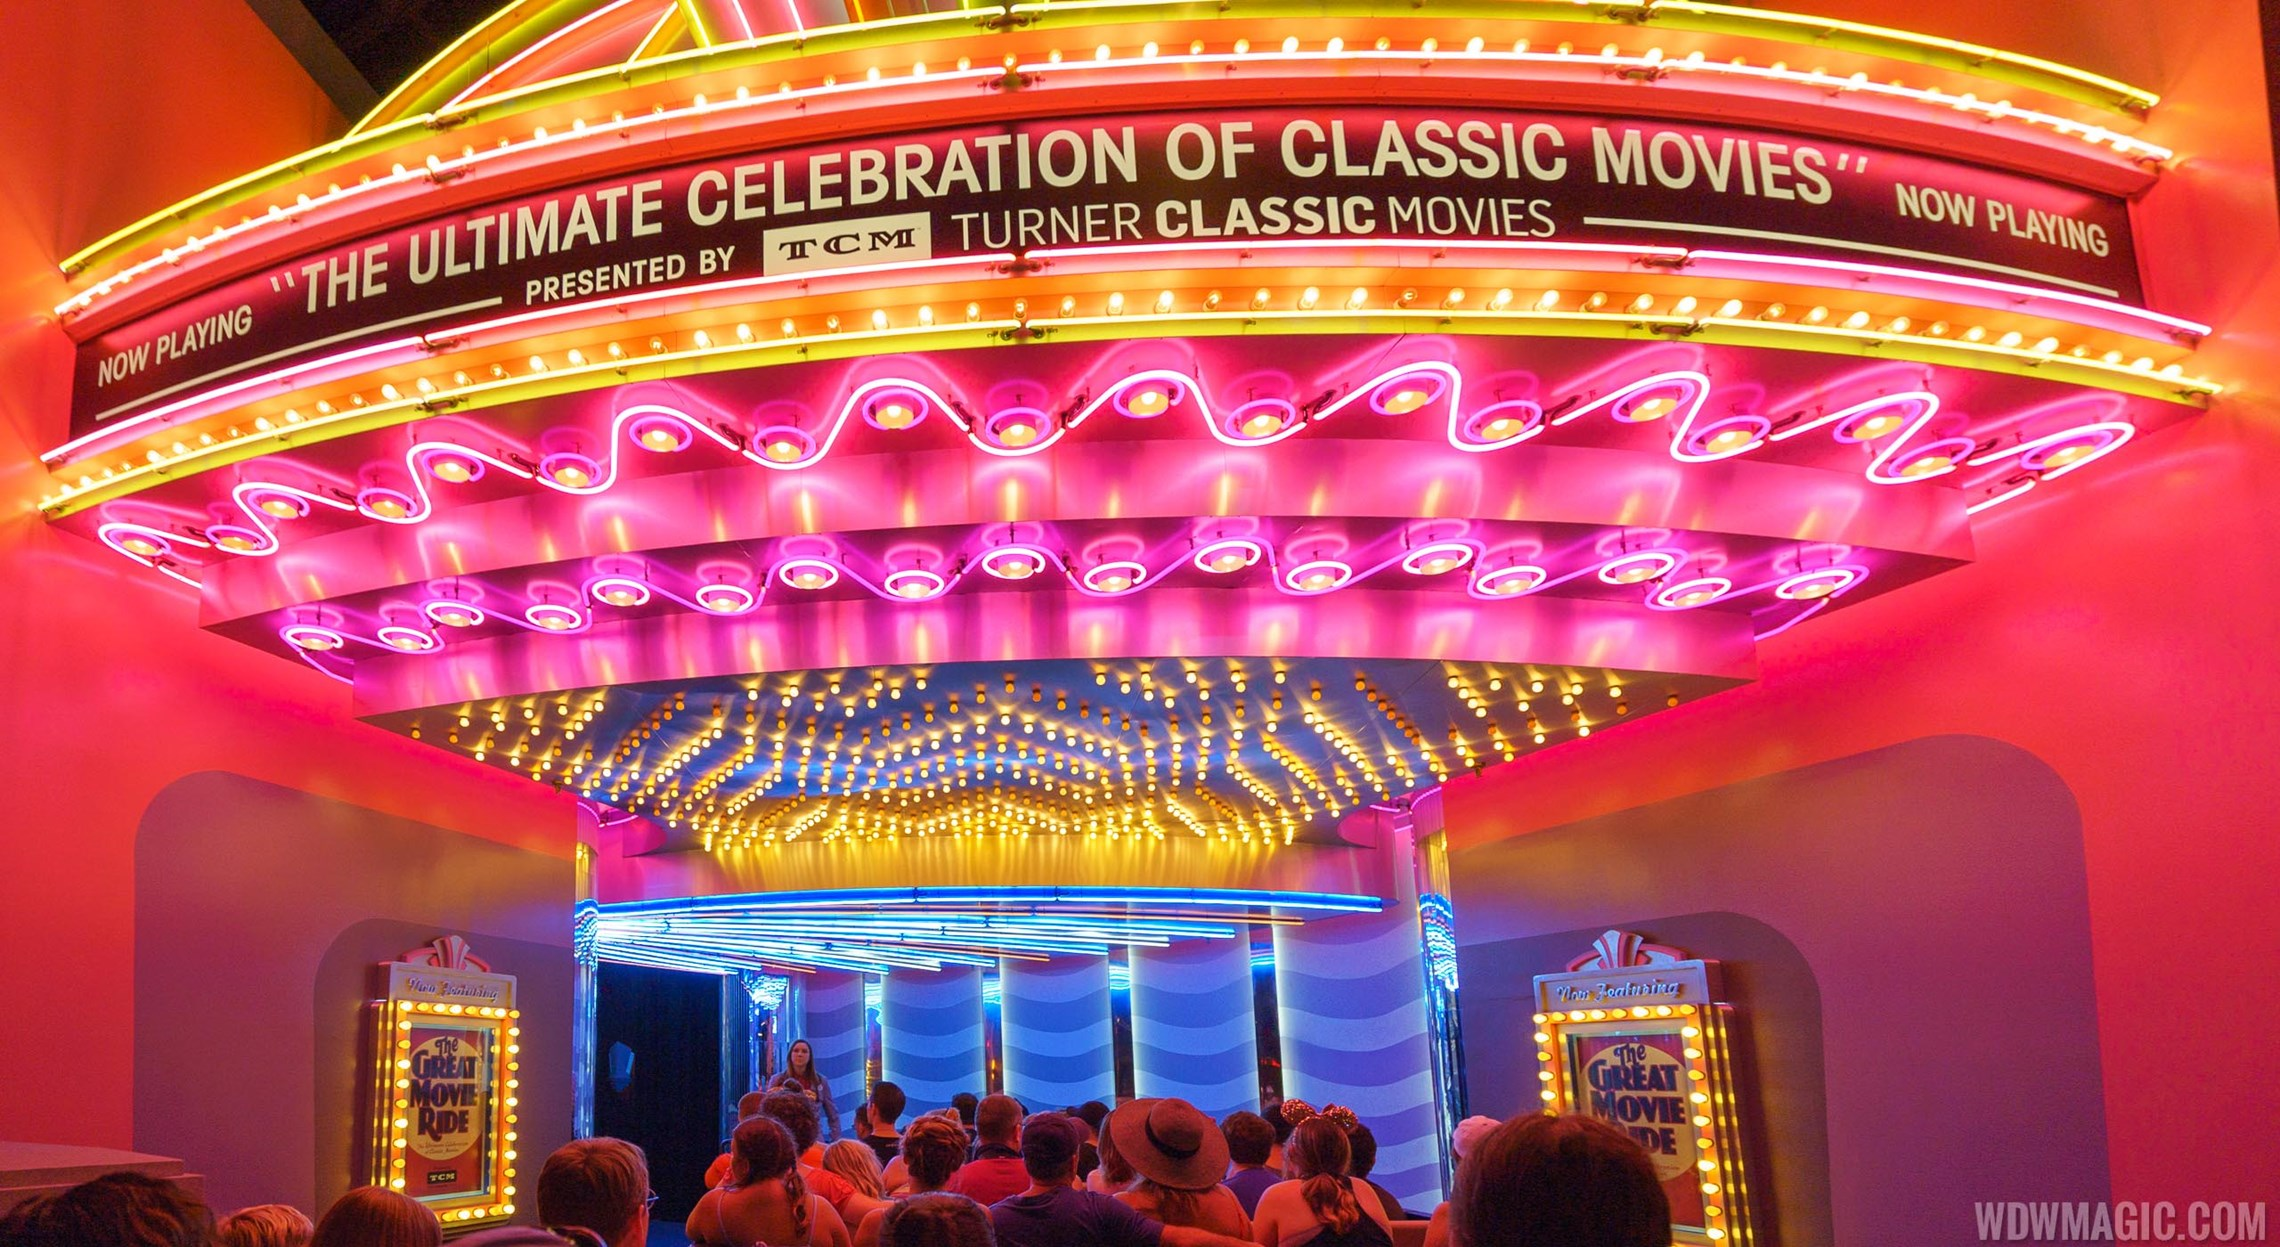 PHOTOS - Tour The Great Movie Ride